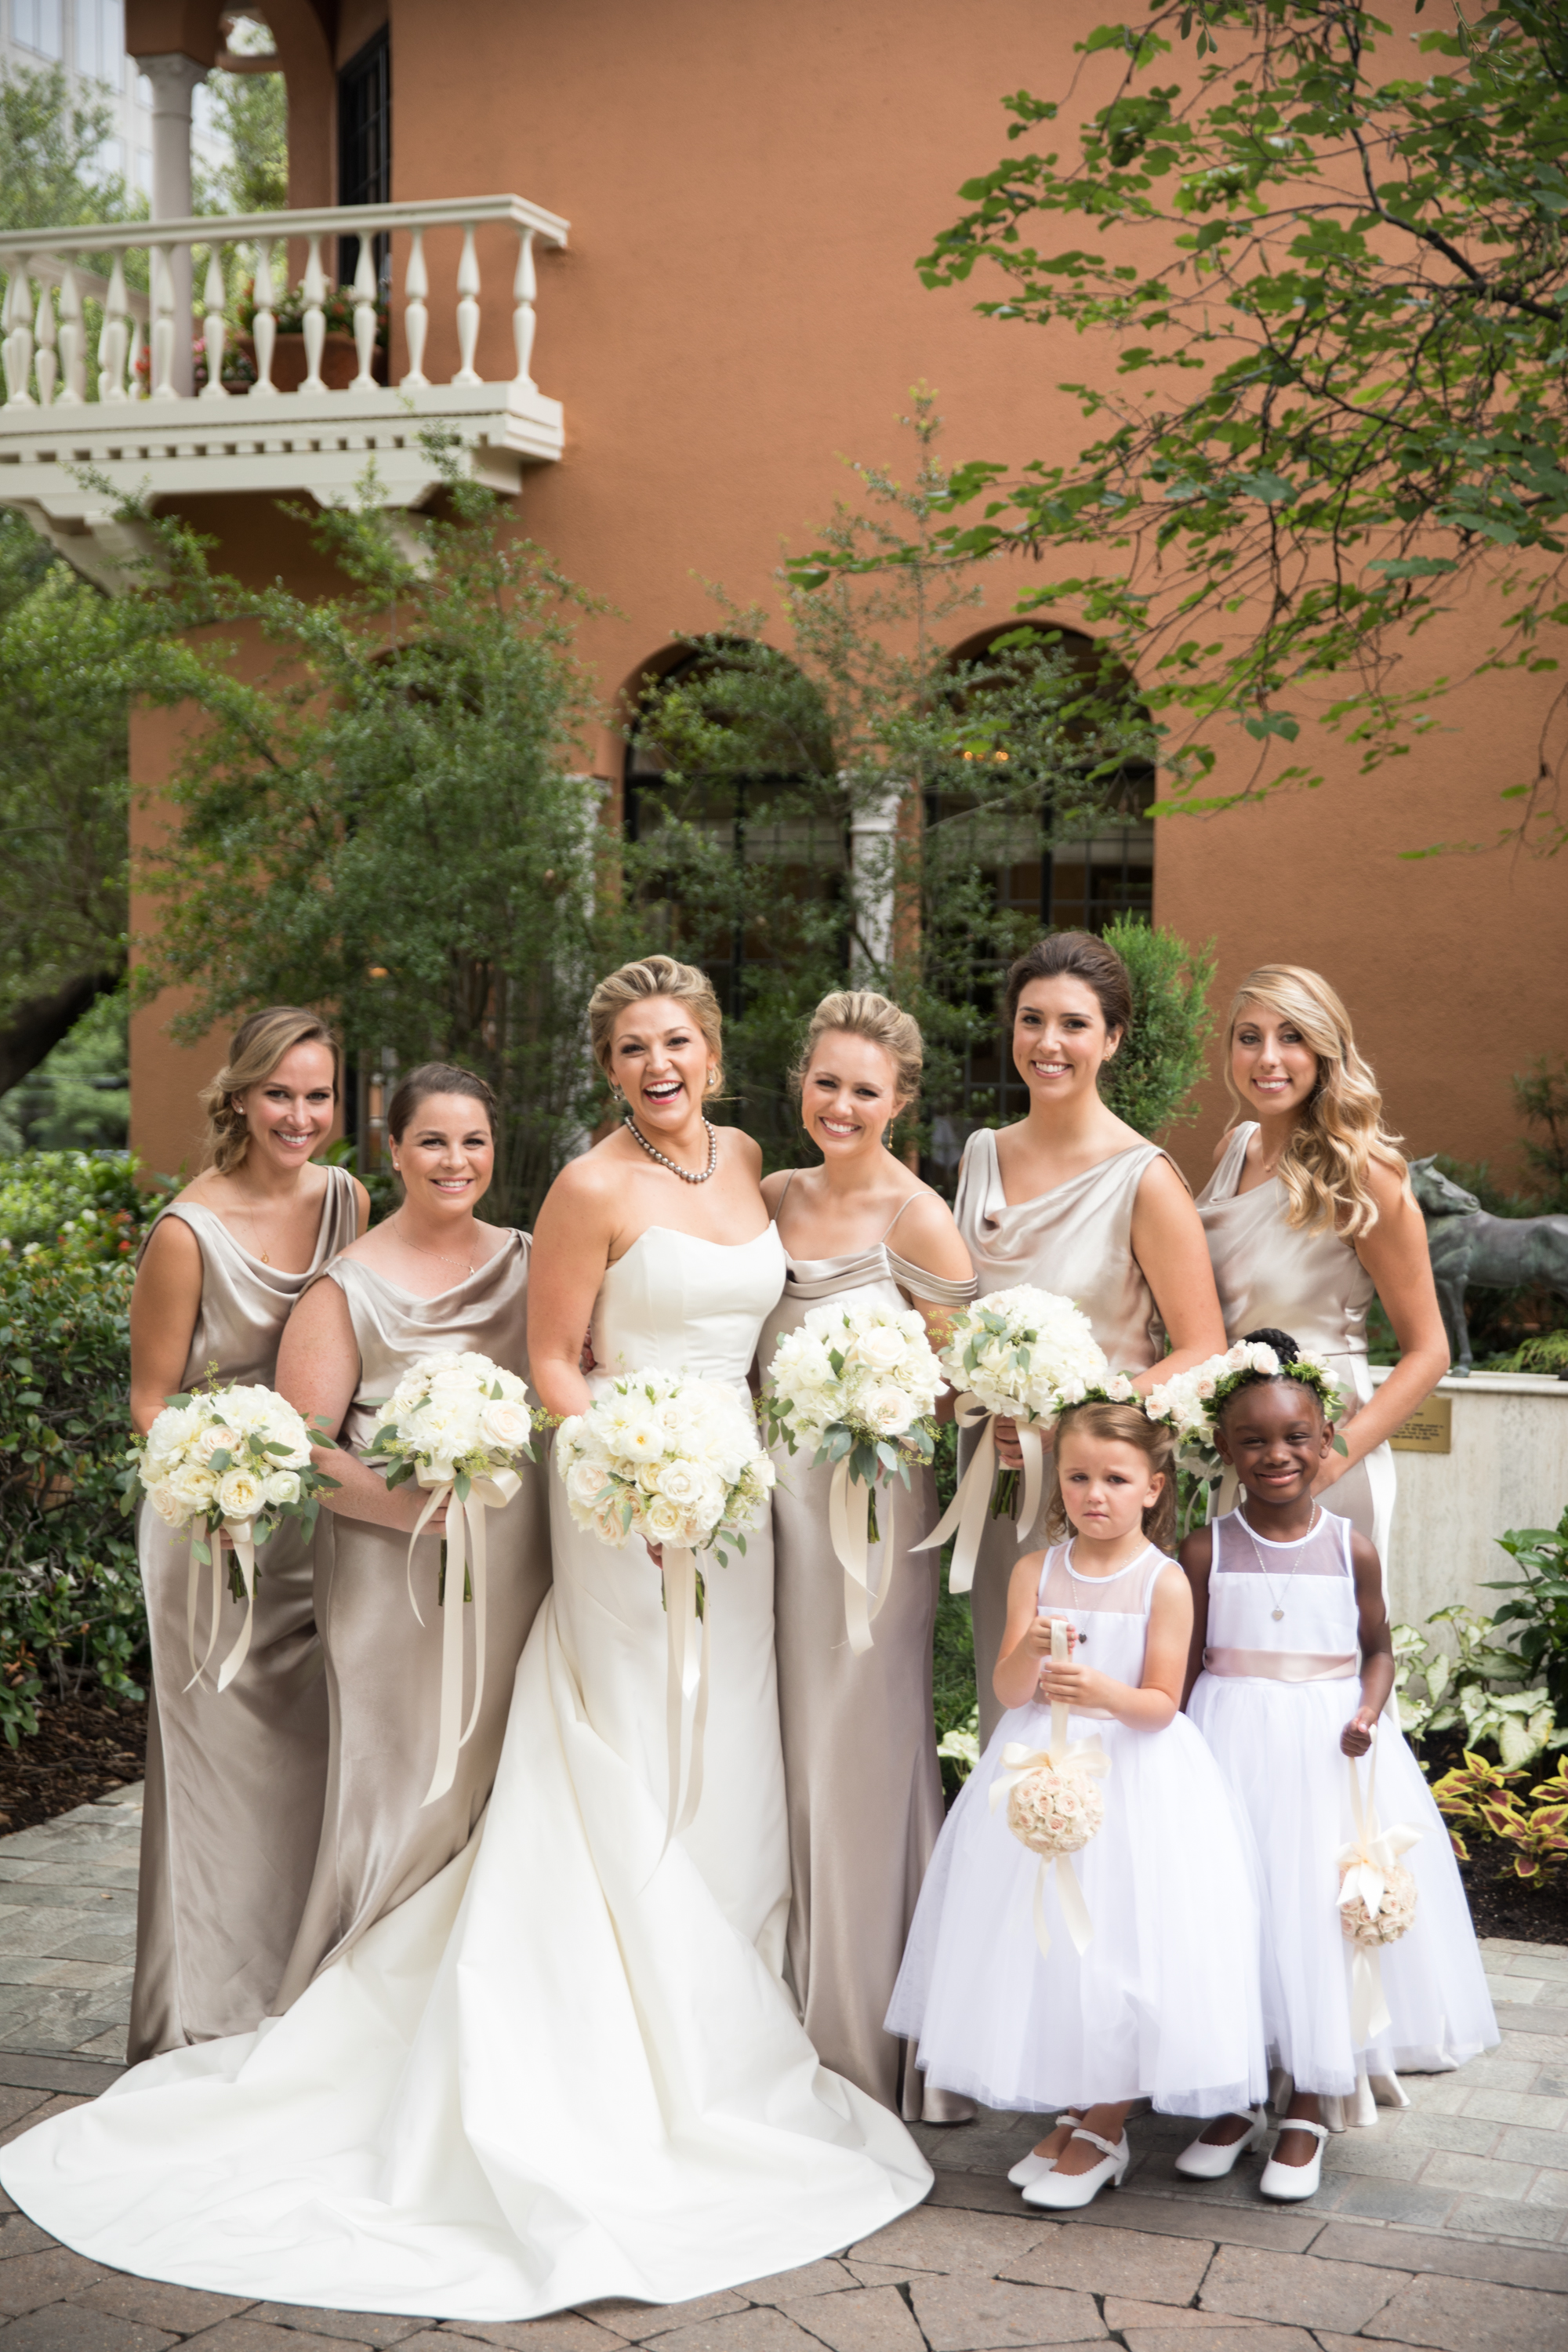 Bridesmaid Details - Dallas, Tx - Summer Wedding - Julian Leaver Events